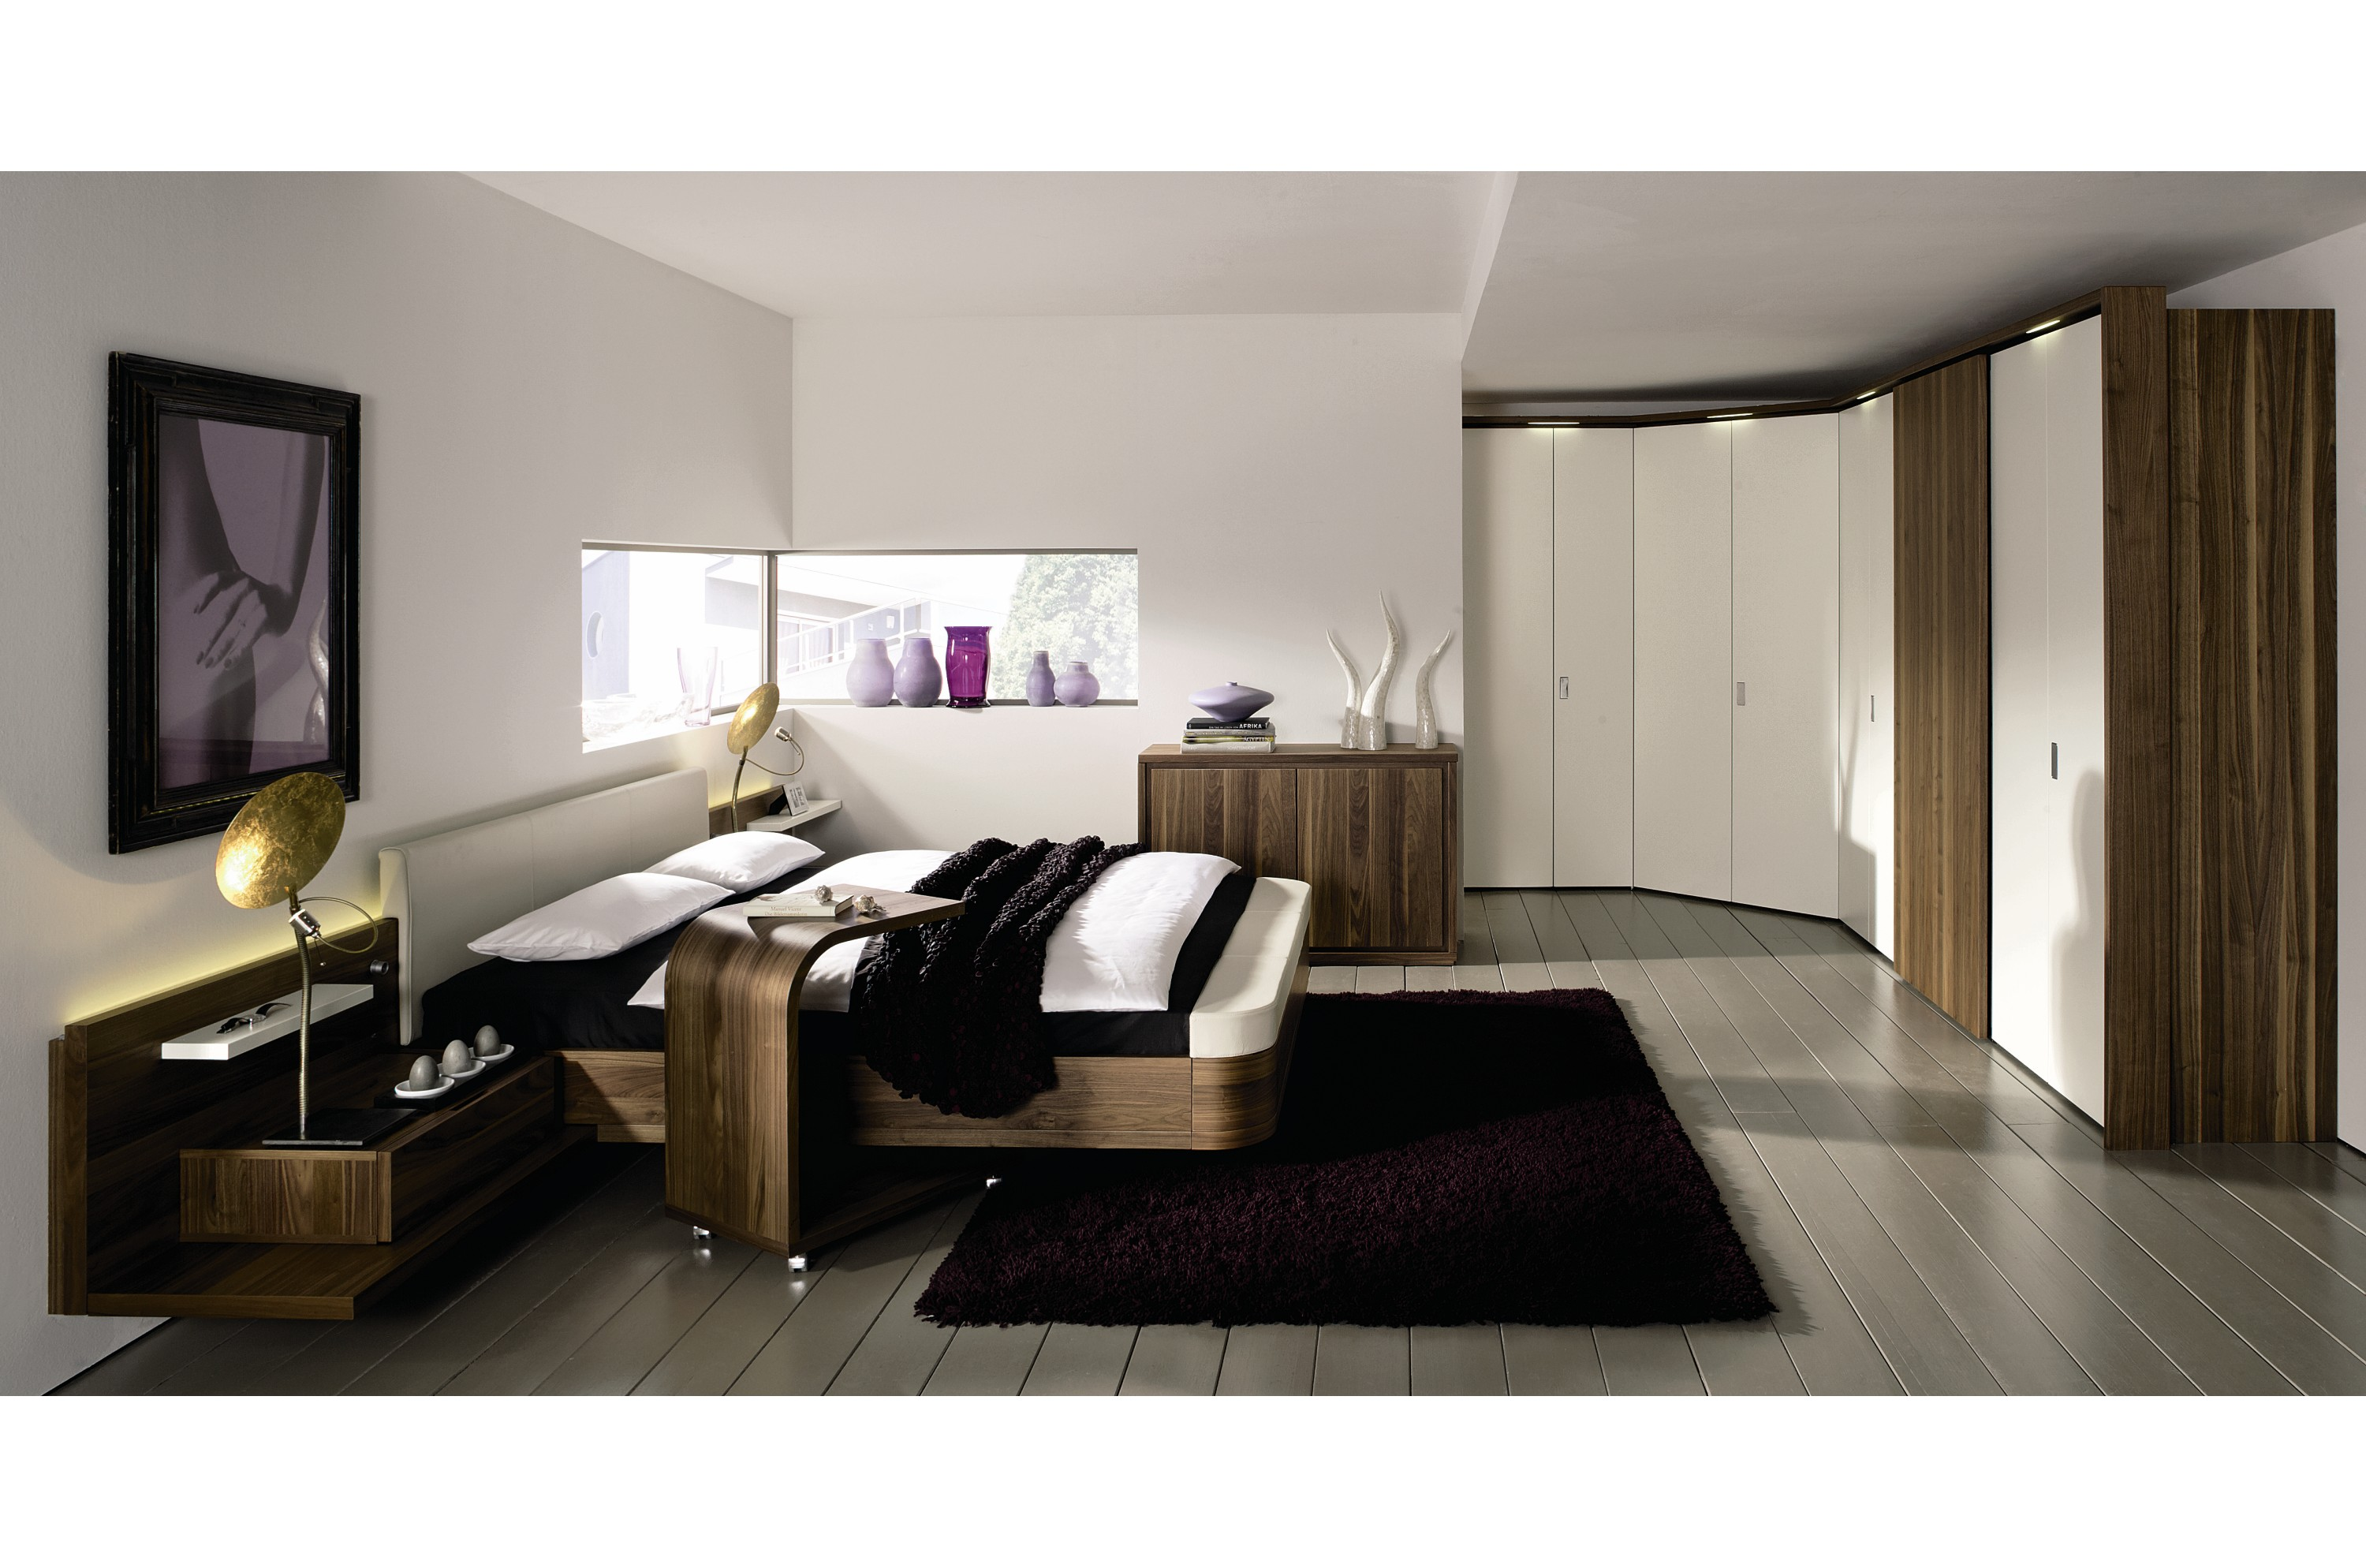 9 erreurs viter dans la d co de sa chambre coucher la deco de mado. Black Bedroom Furniture Sets. Home Design Ideas